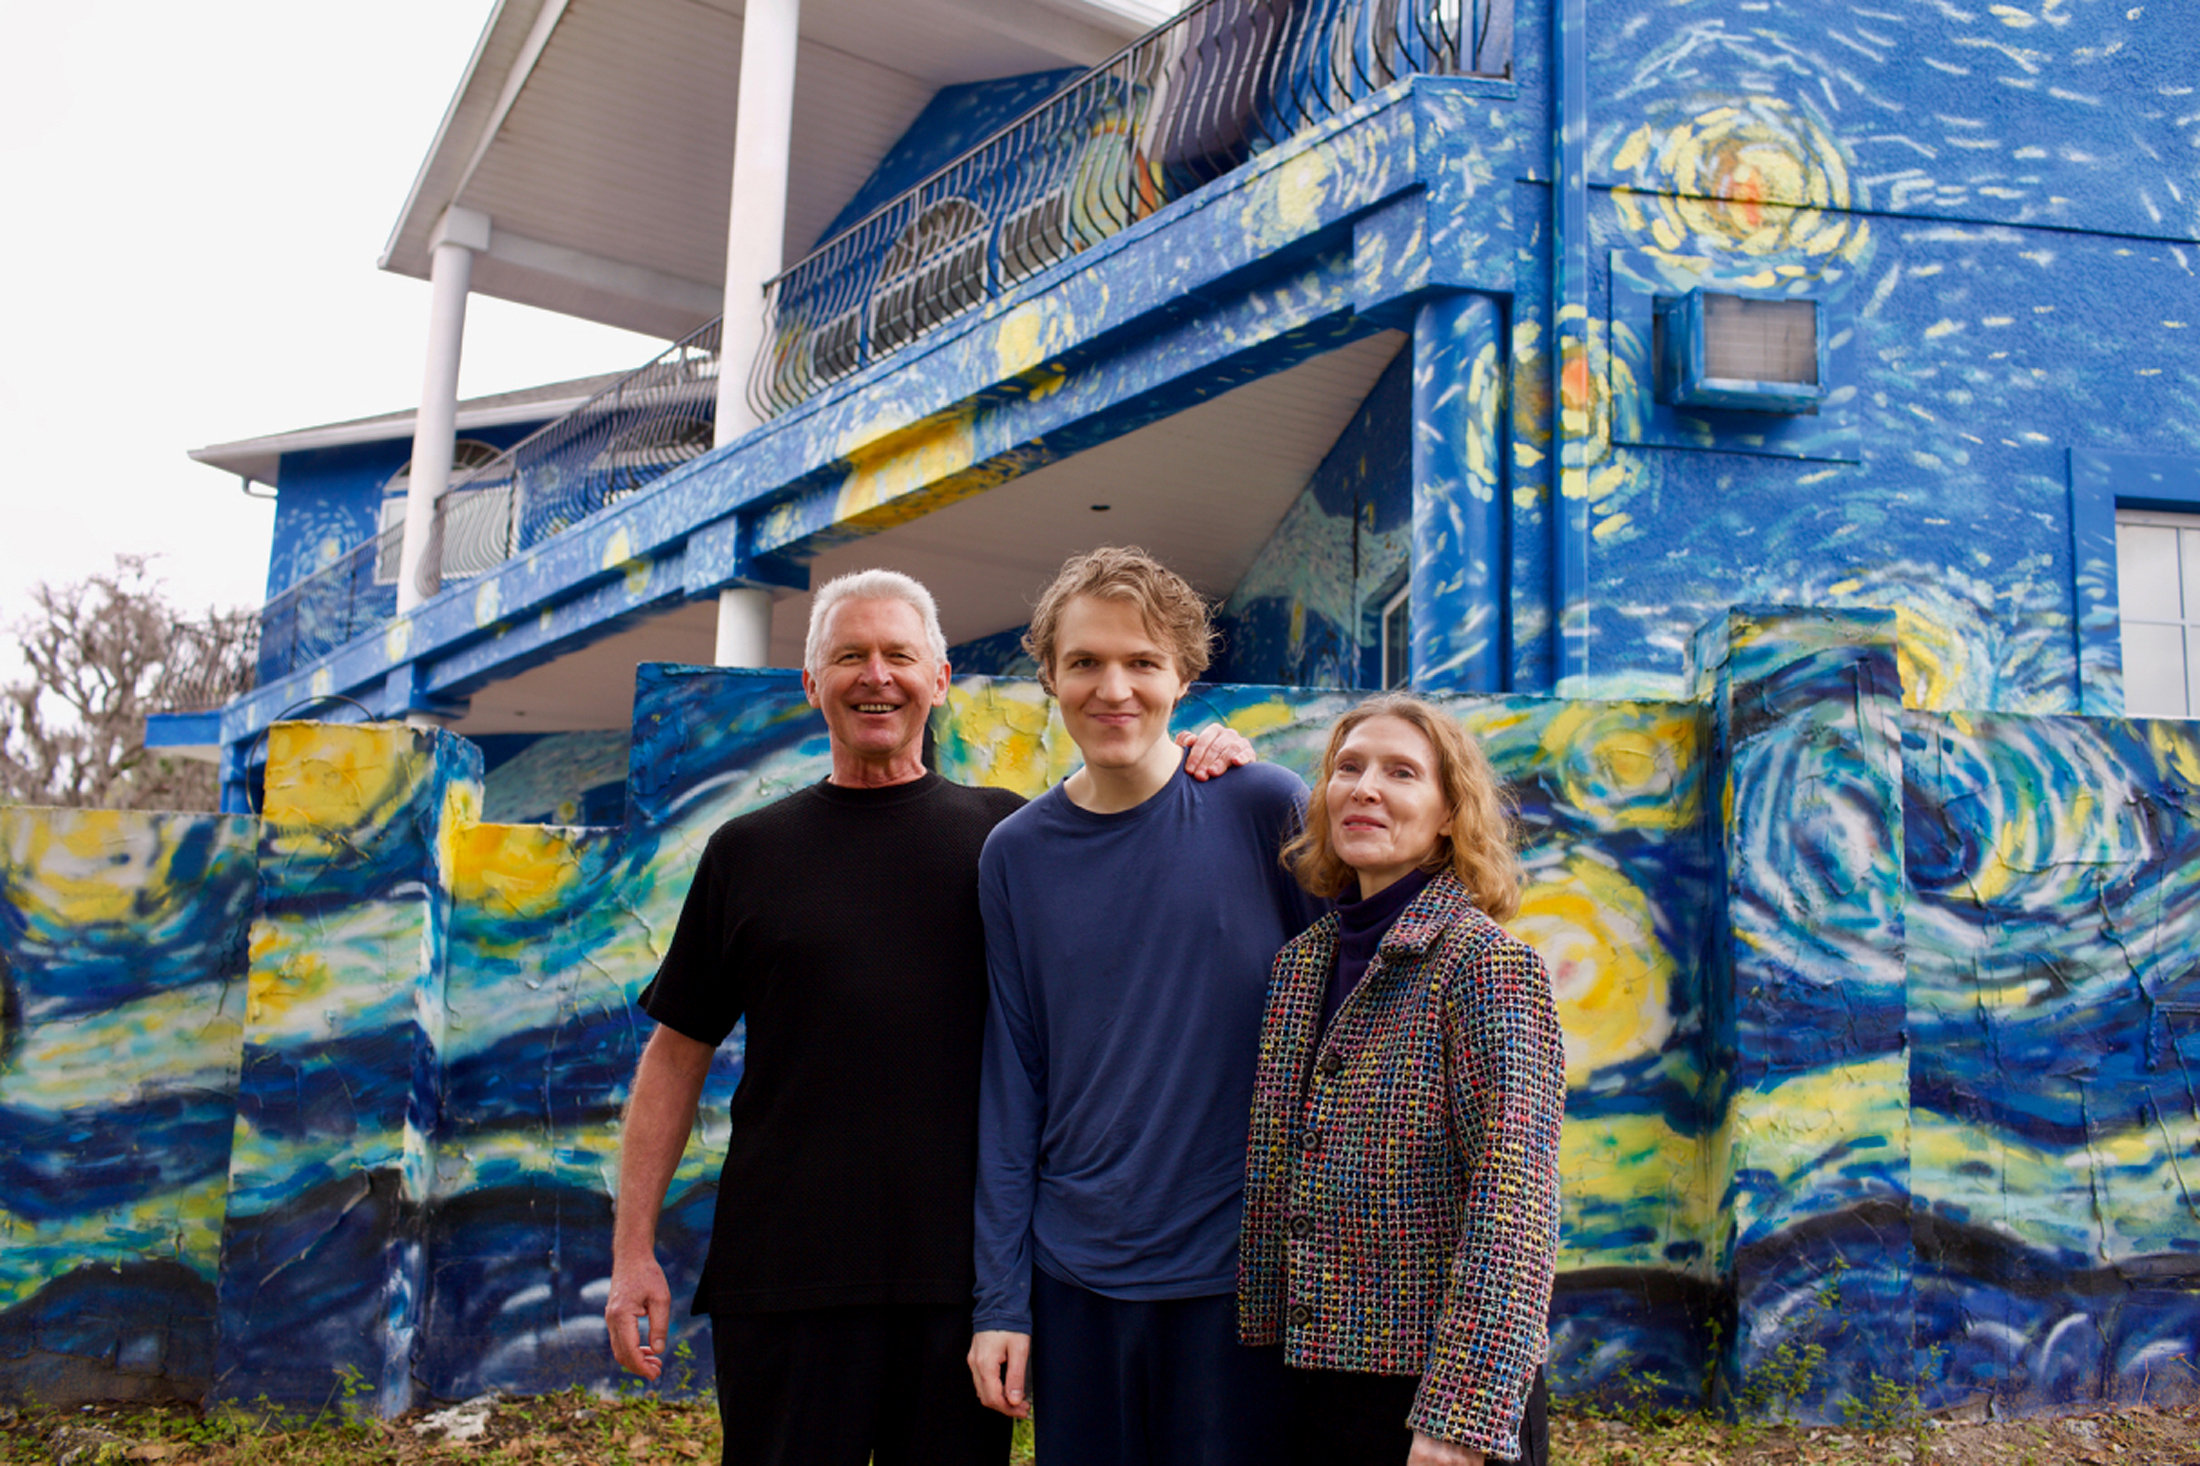 Lubomir Jastrzebski and Nancy Nembhauser pose with their adult son in front of the house in Mount Dora, Florida